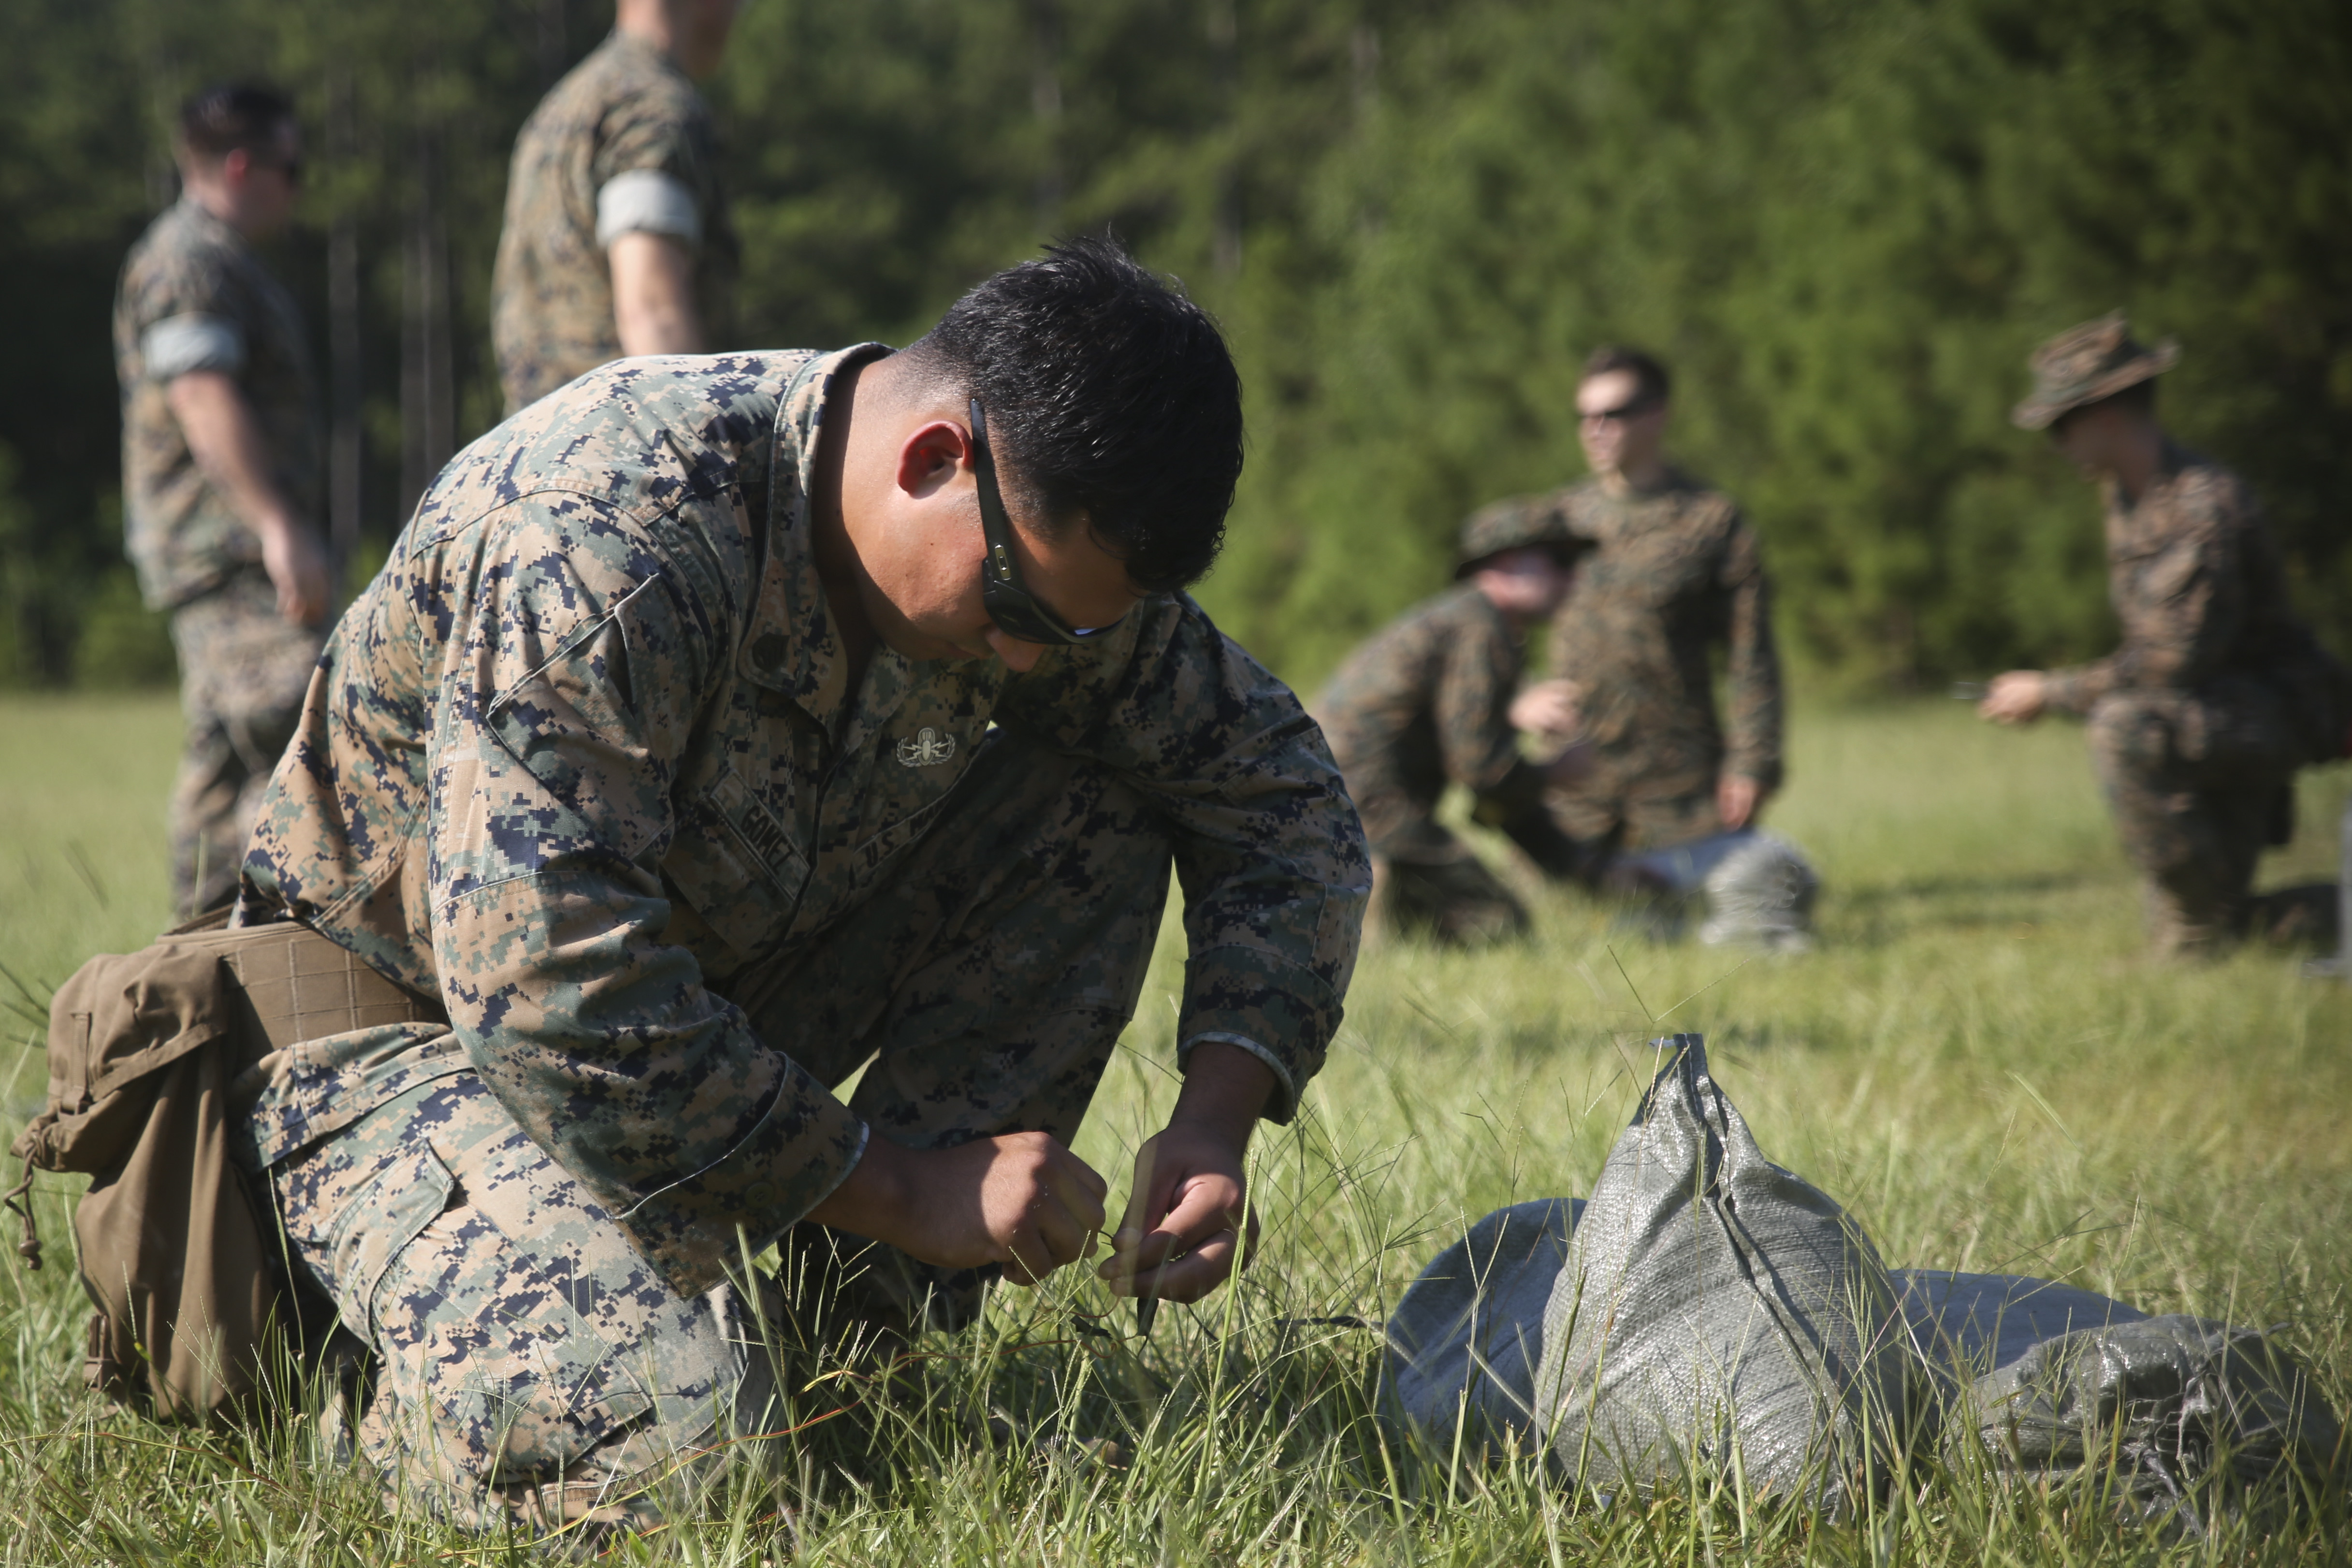 Back To The Basics Eod Sharpens Skills Increases Readiness Marine Corps Air Station Beaufort News View He is the younger brother of actor rick gomez. back to the basics eod sharpens skills increases readiness marine corps air station beaufort news view